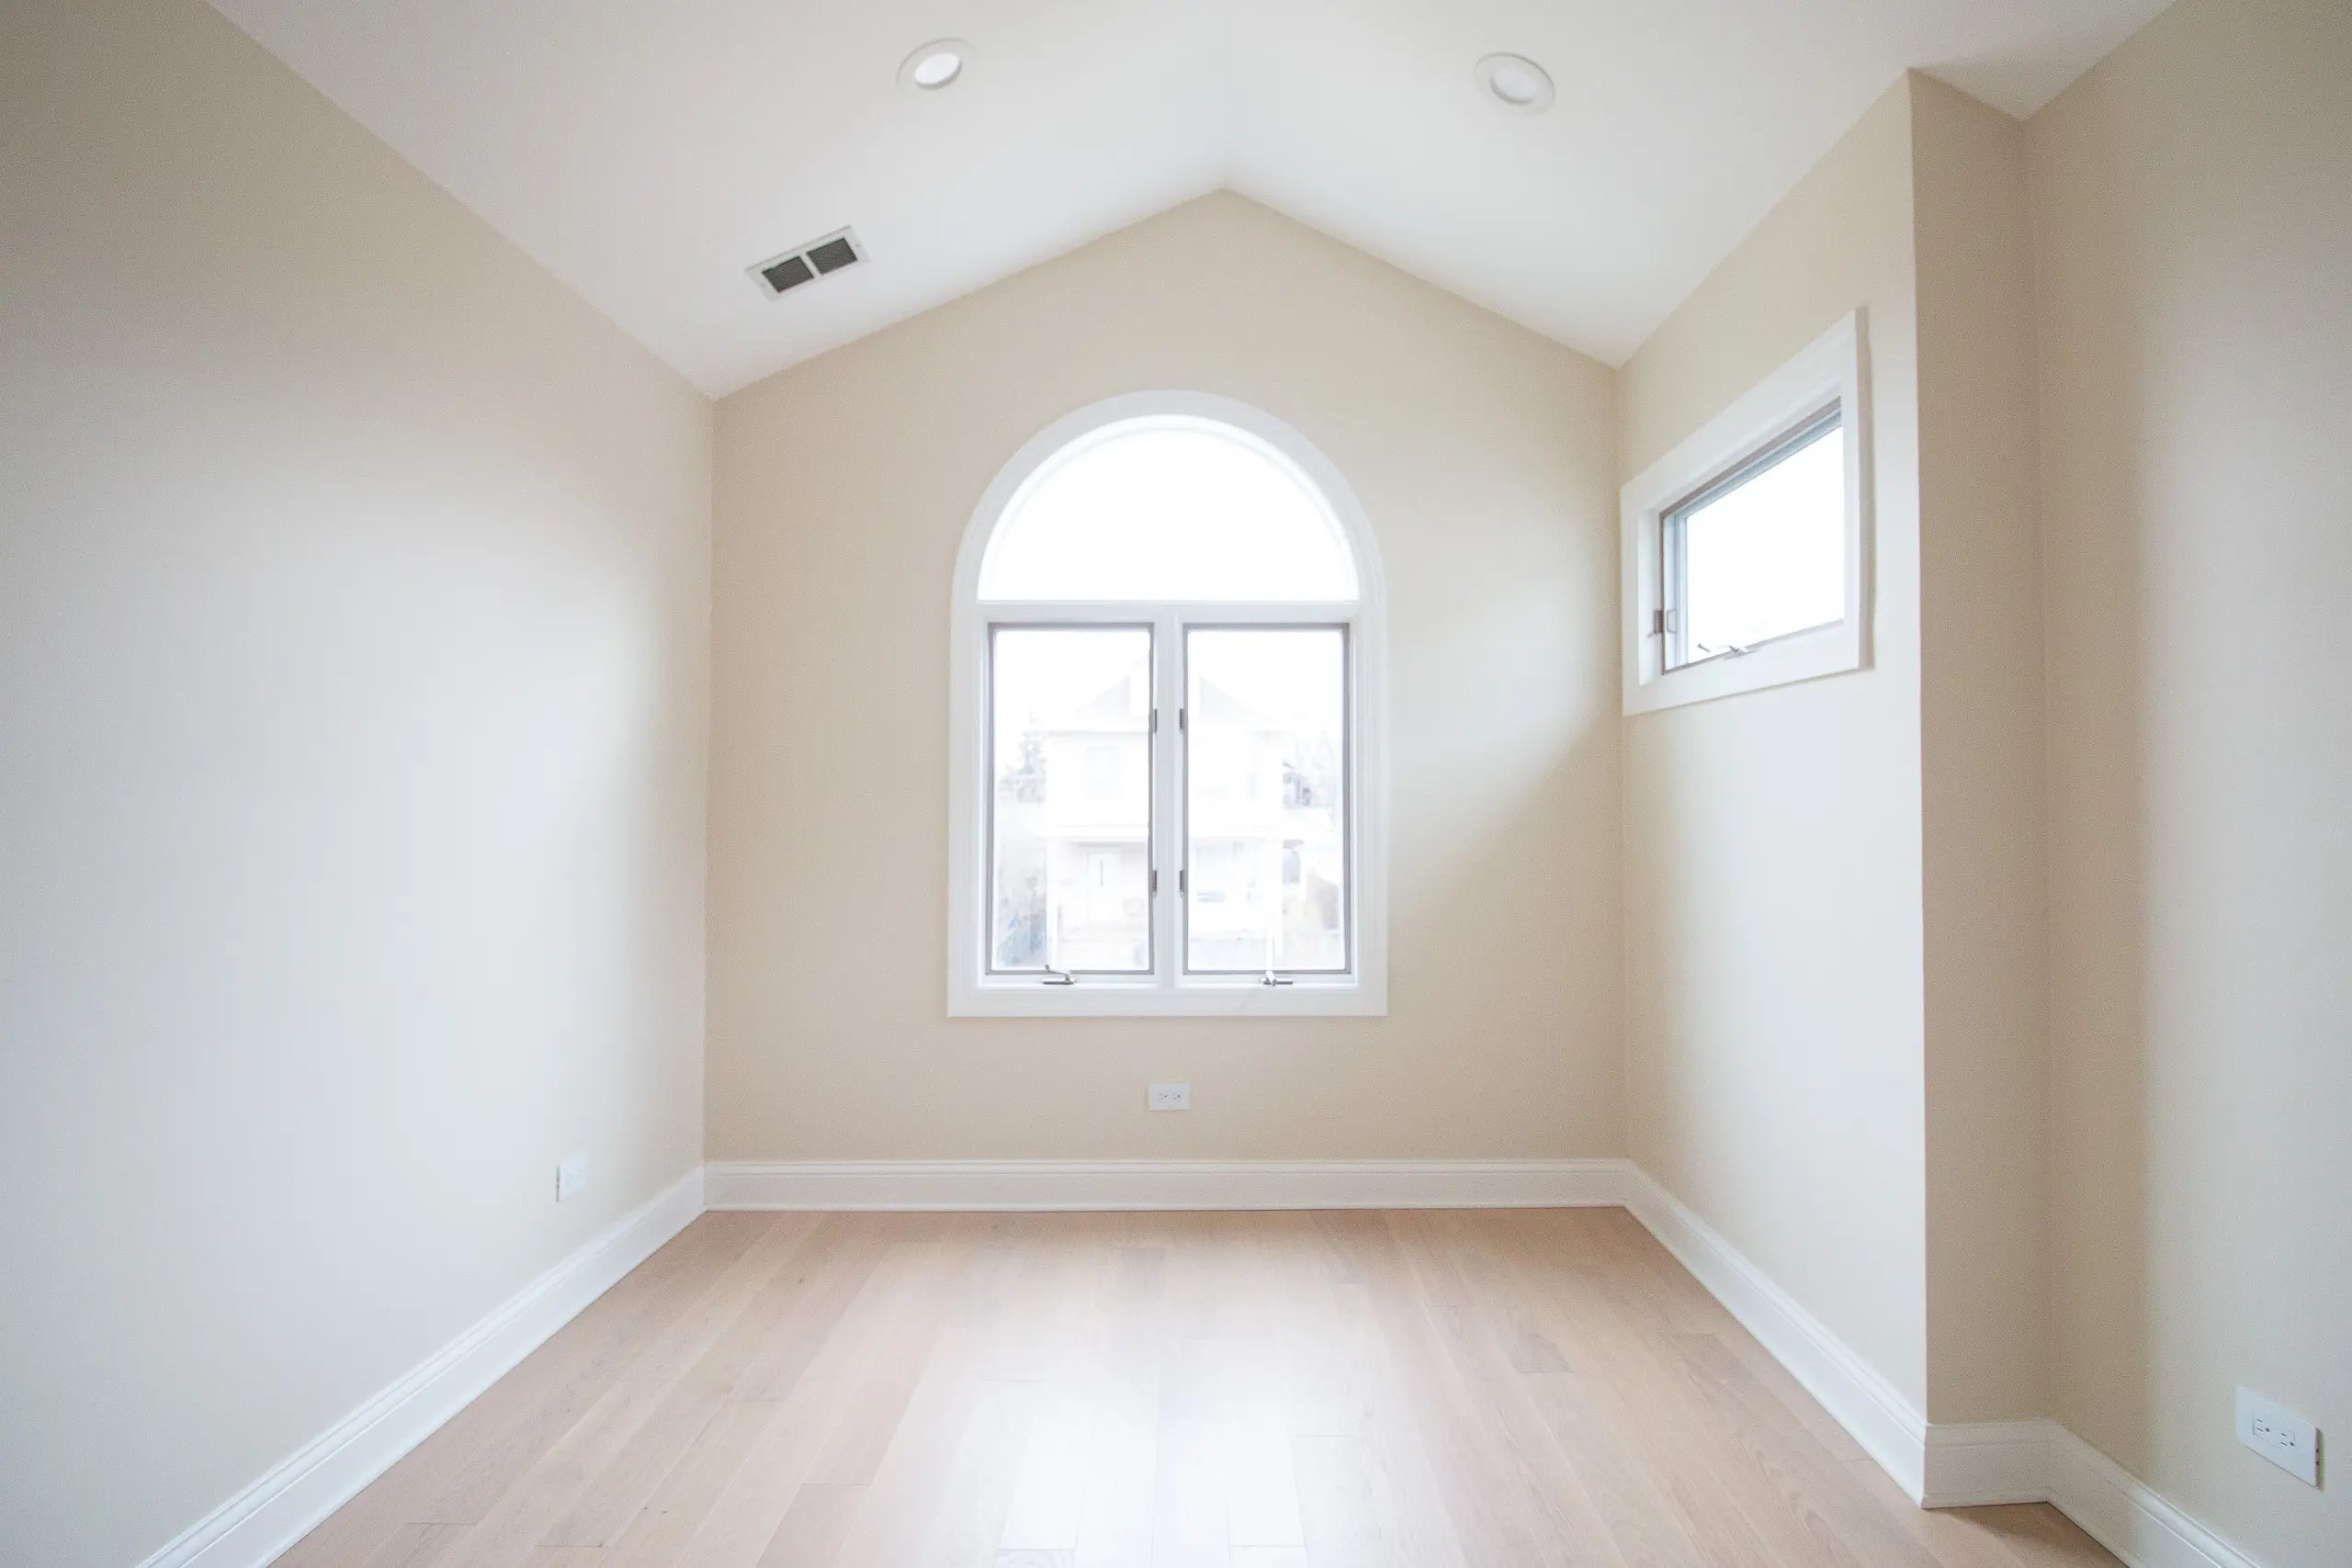 https thediyplaybook com arched window treatments